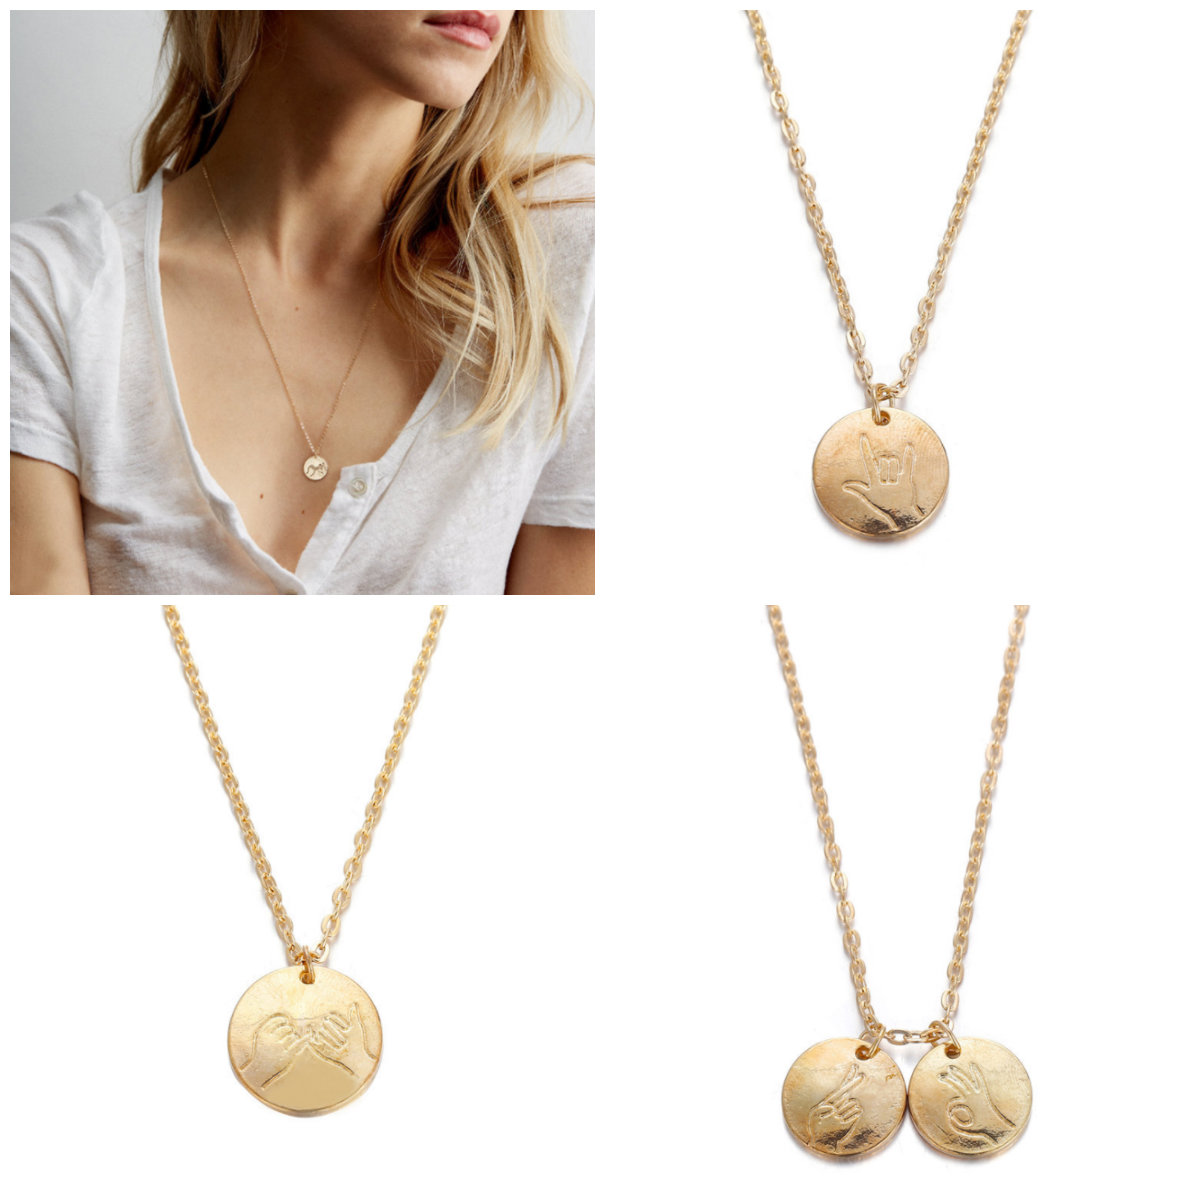 0c2599a594b Details about New Women Gesture Pendant Necklace Simple Cute Gold Circle  Metal Pendant Jewelry